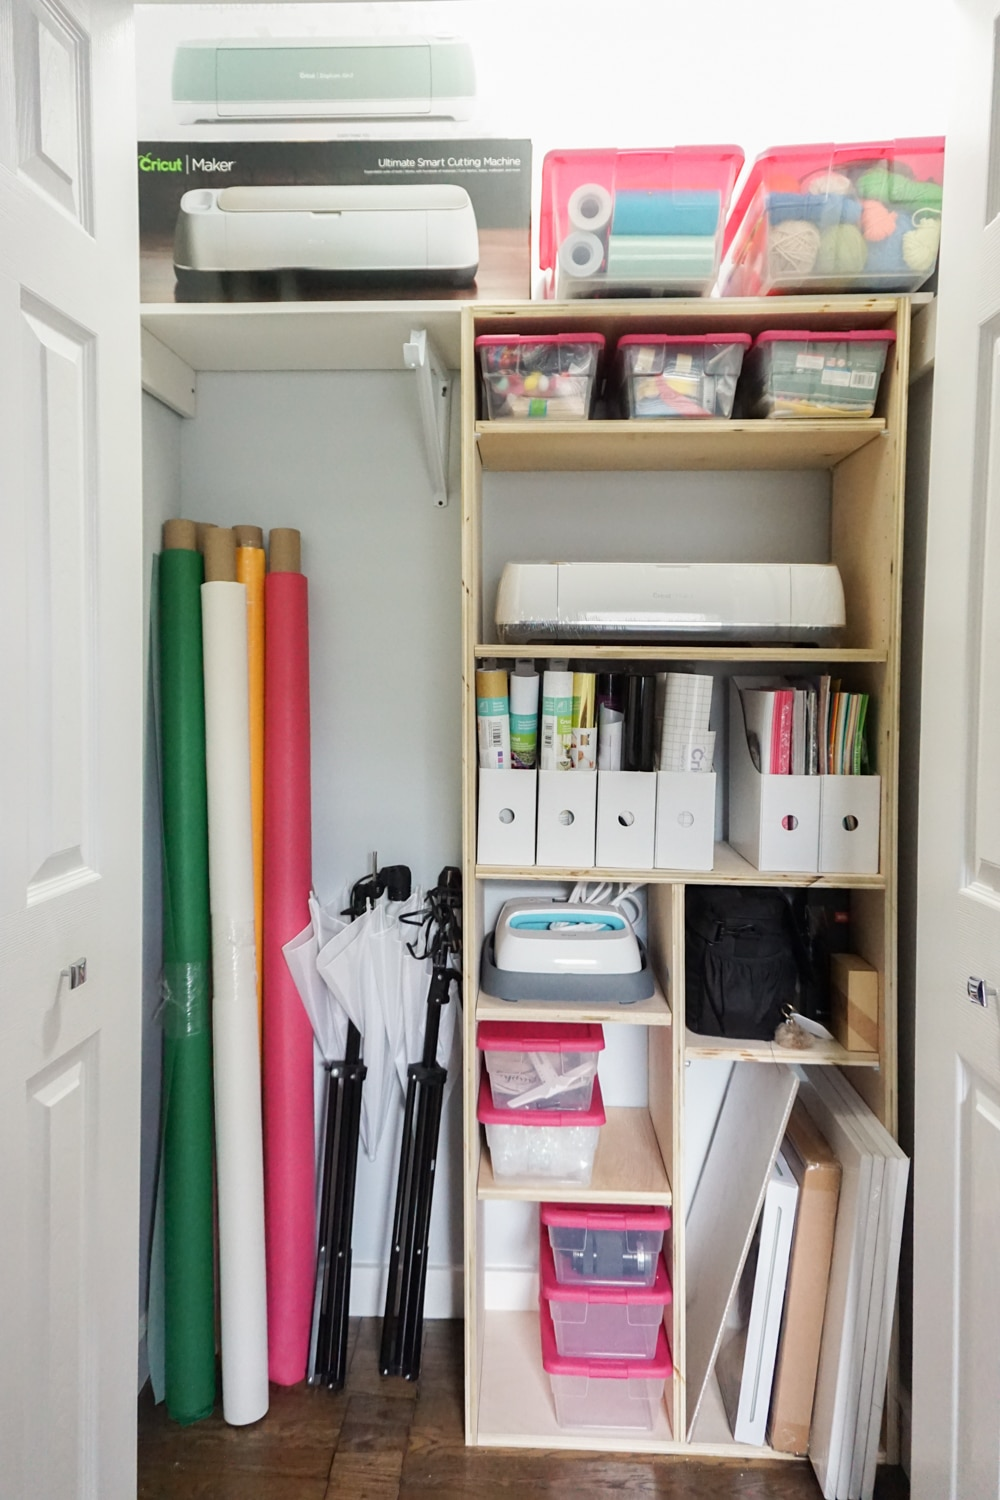 Full view of DIY closet shelves - perfect craft closet organization idea!